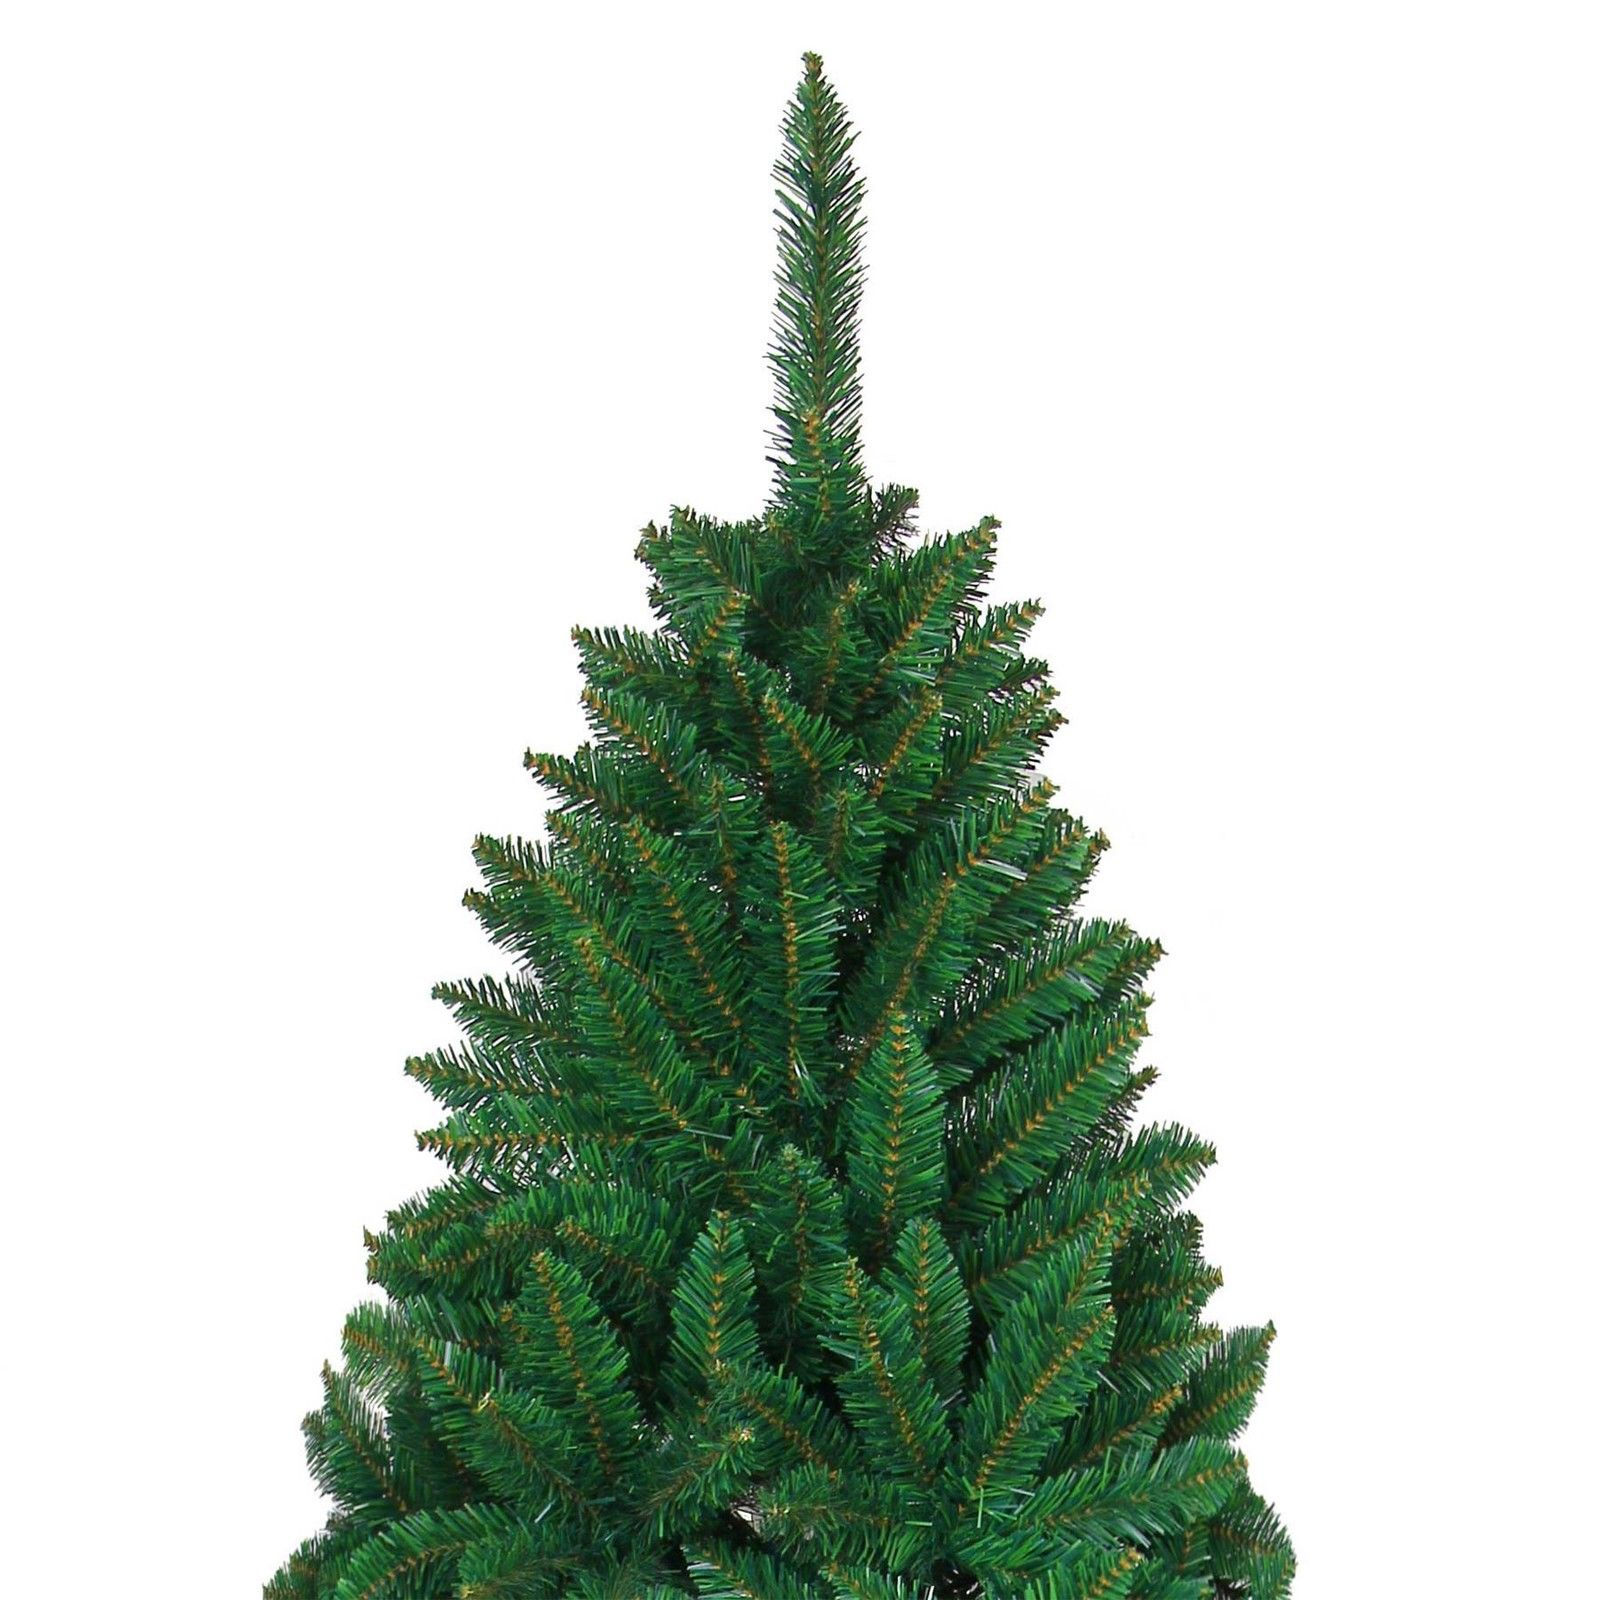 deluxe christmas tree artificial imperial pine 4ft 5ft. Black Bedroom Furniture Sets. Home Design Ideas